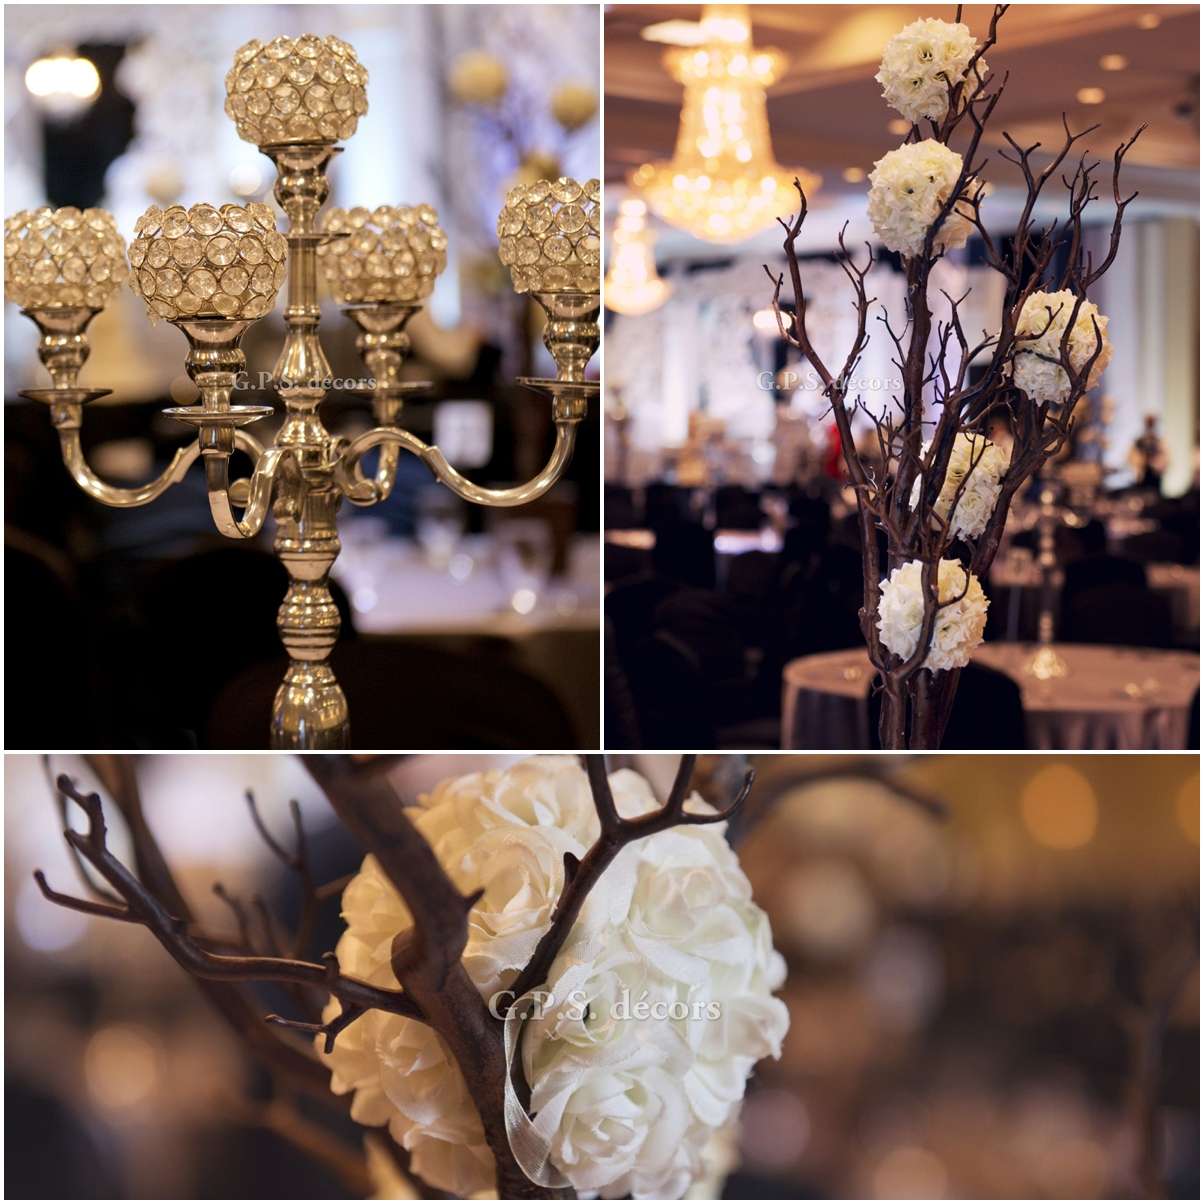 Brampton Wedding decorators